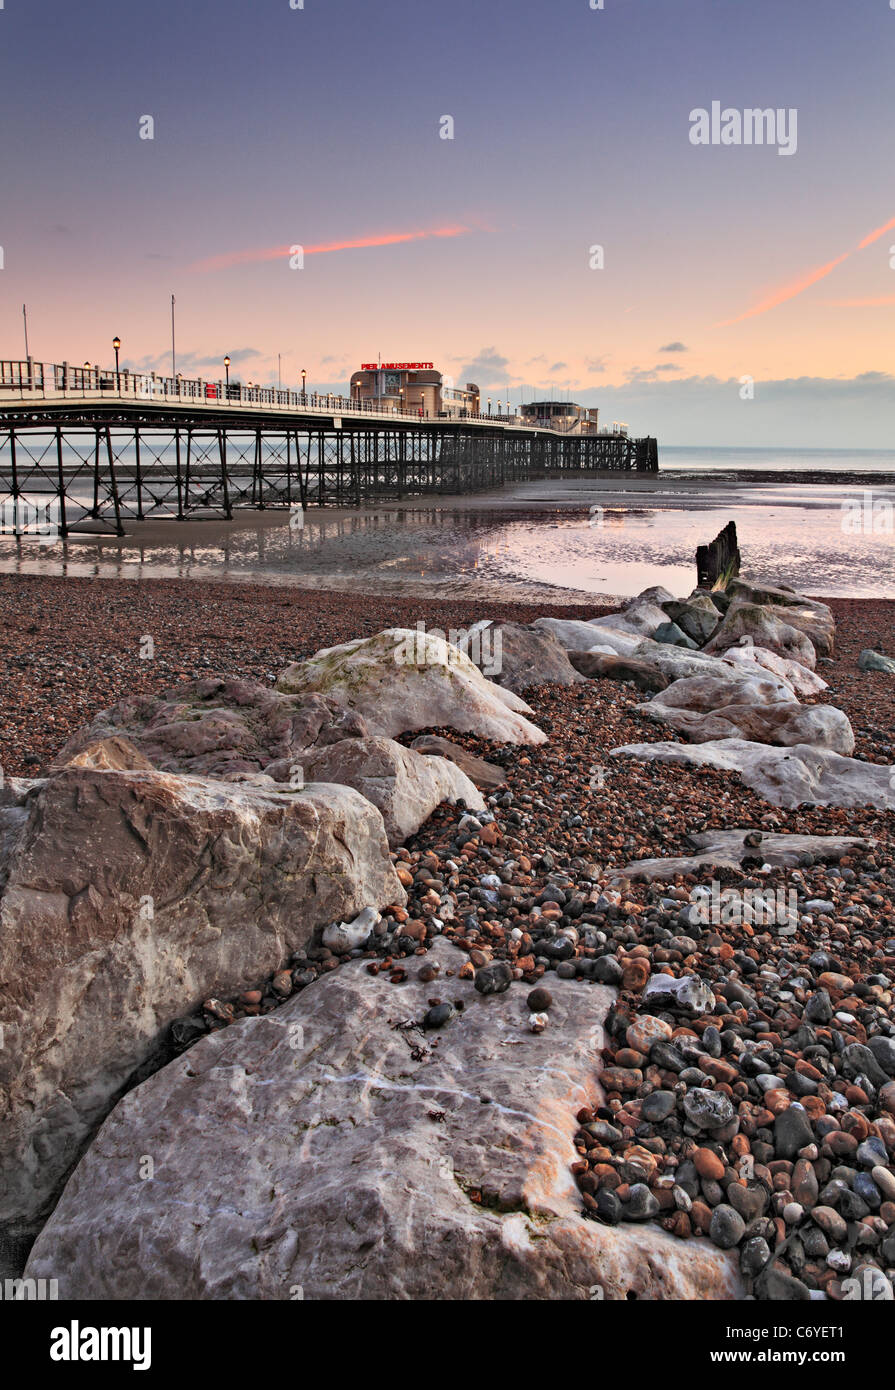 Worthing Pier at Dusk,West Sussex - Stock Image